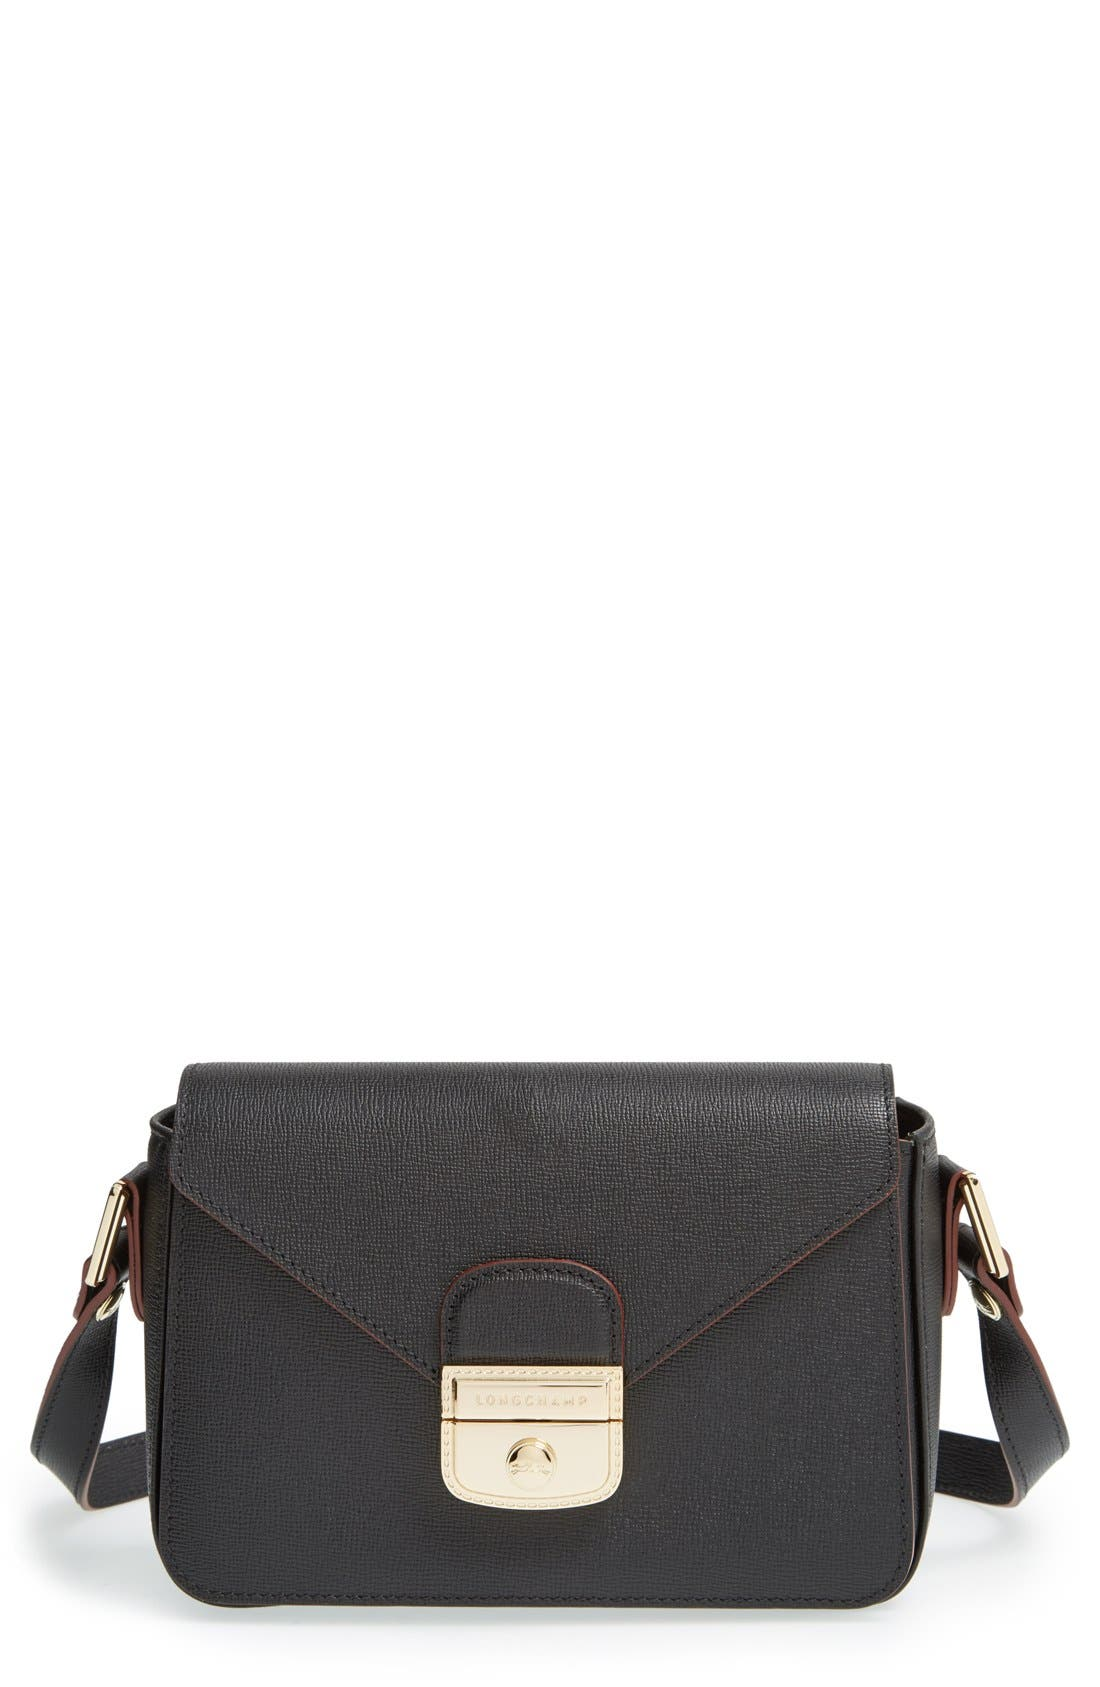 'Le Pliage - Heritage' Small Crossbody Bag, Main, color, 001